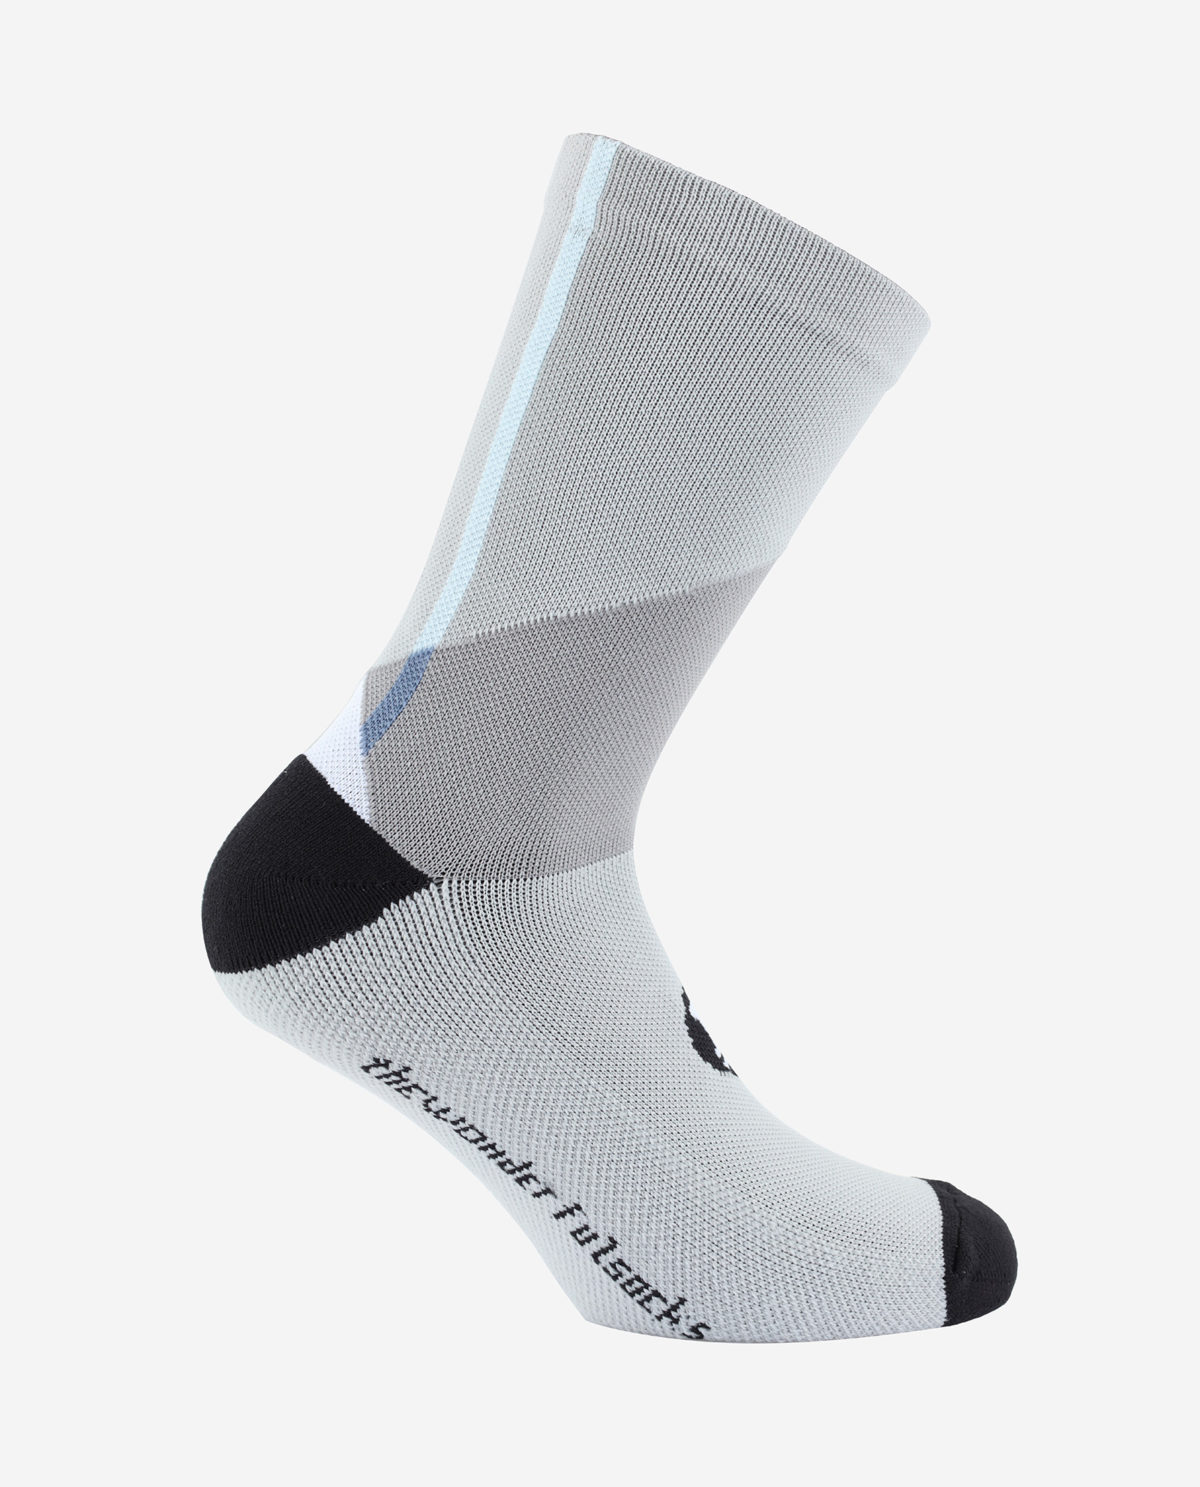 Gavia winter socks - Rouleur LTD ed.